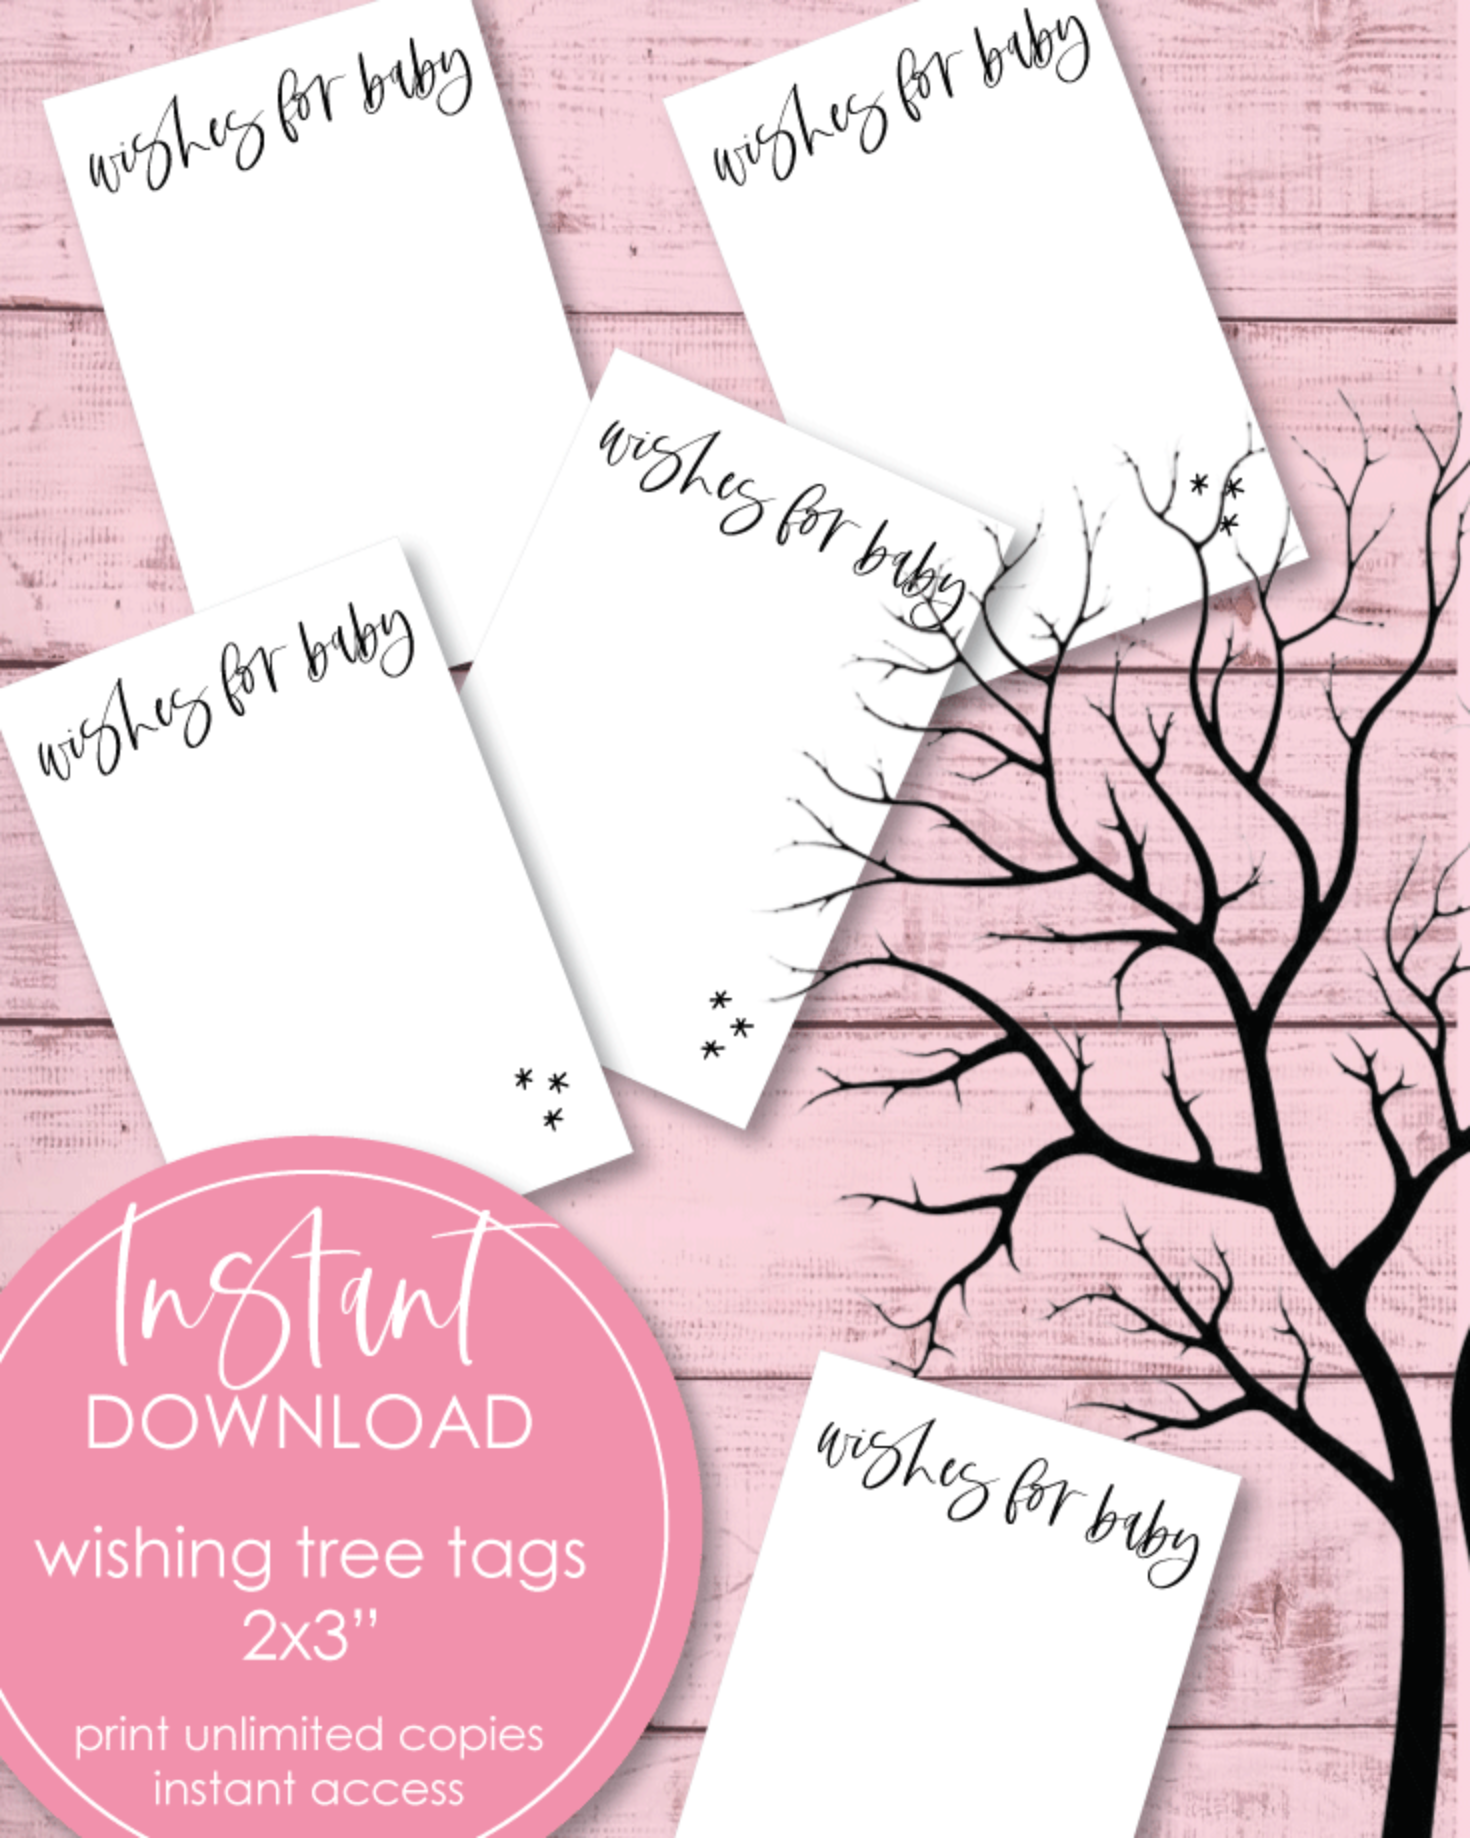 Wishing Tree Tags For A Baby Shower 2x3""